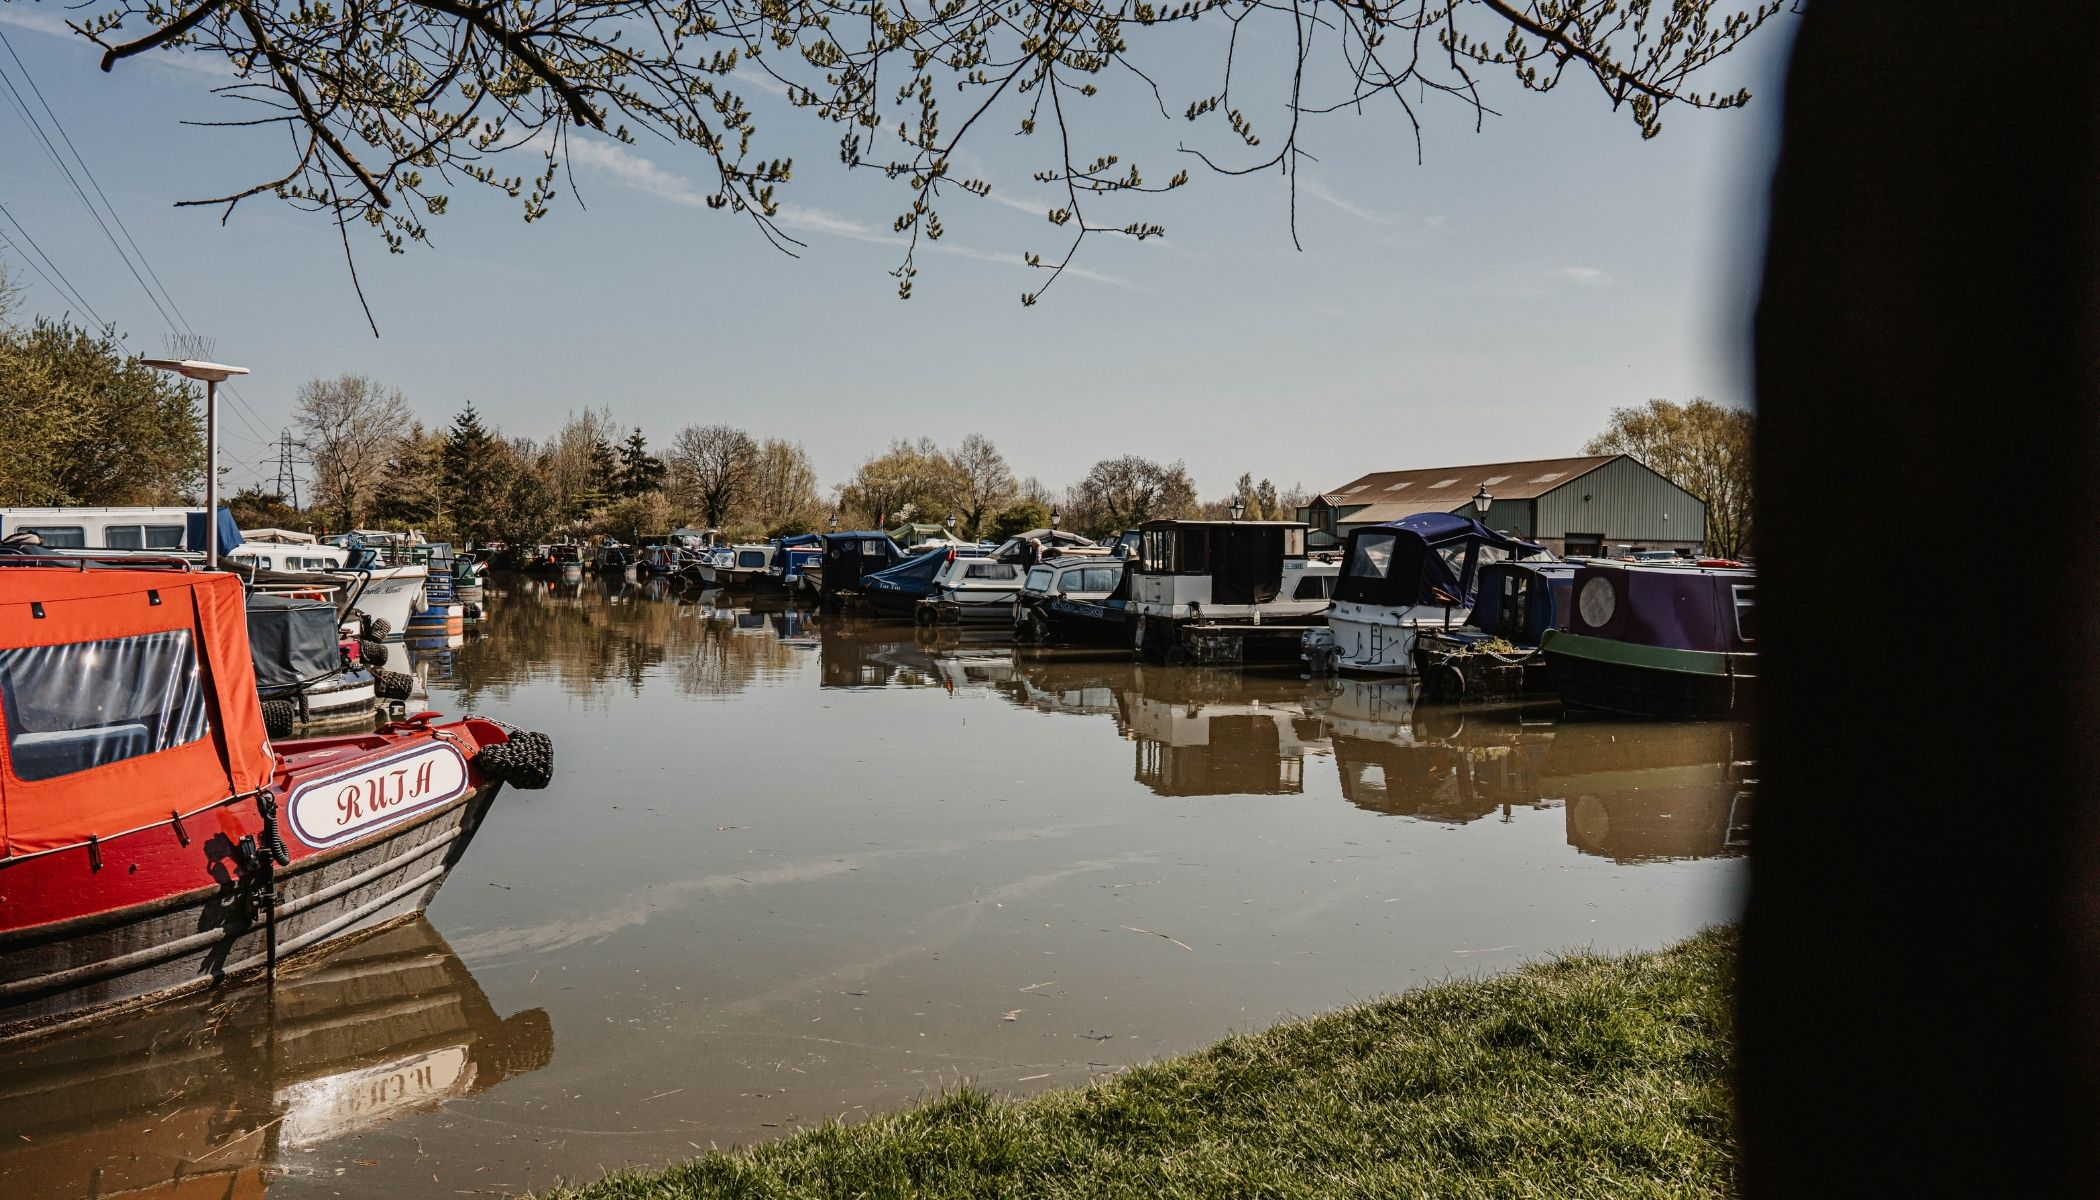 Canal and cycling in Wiltshire